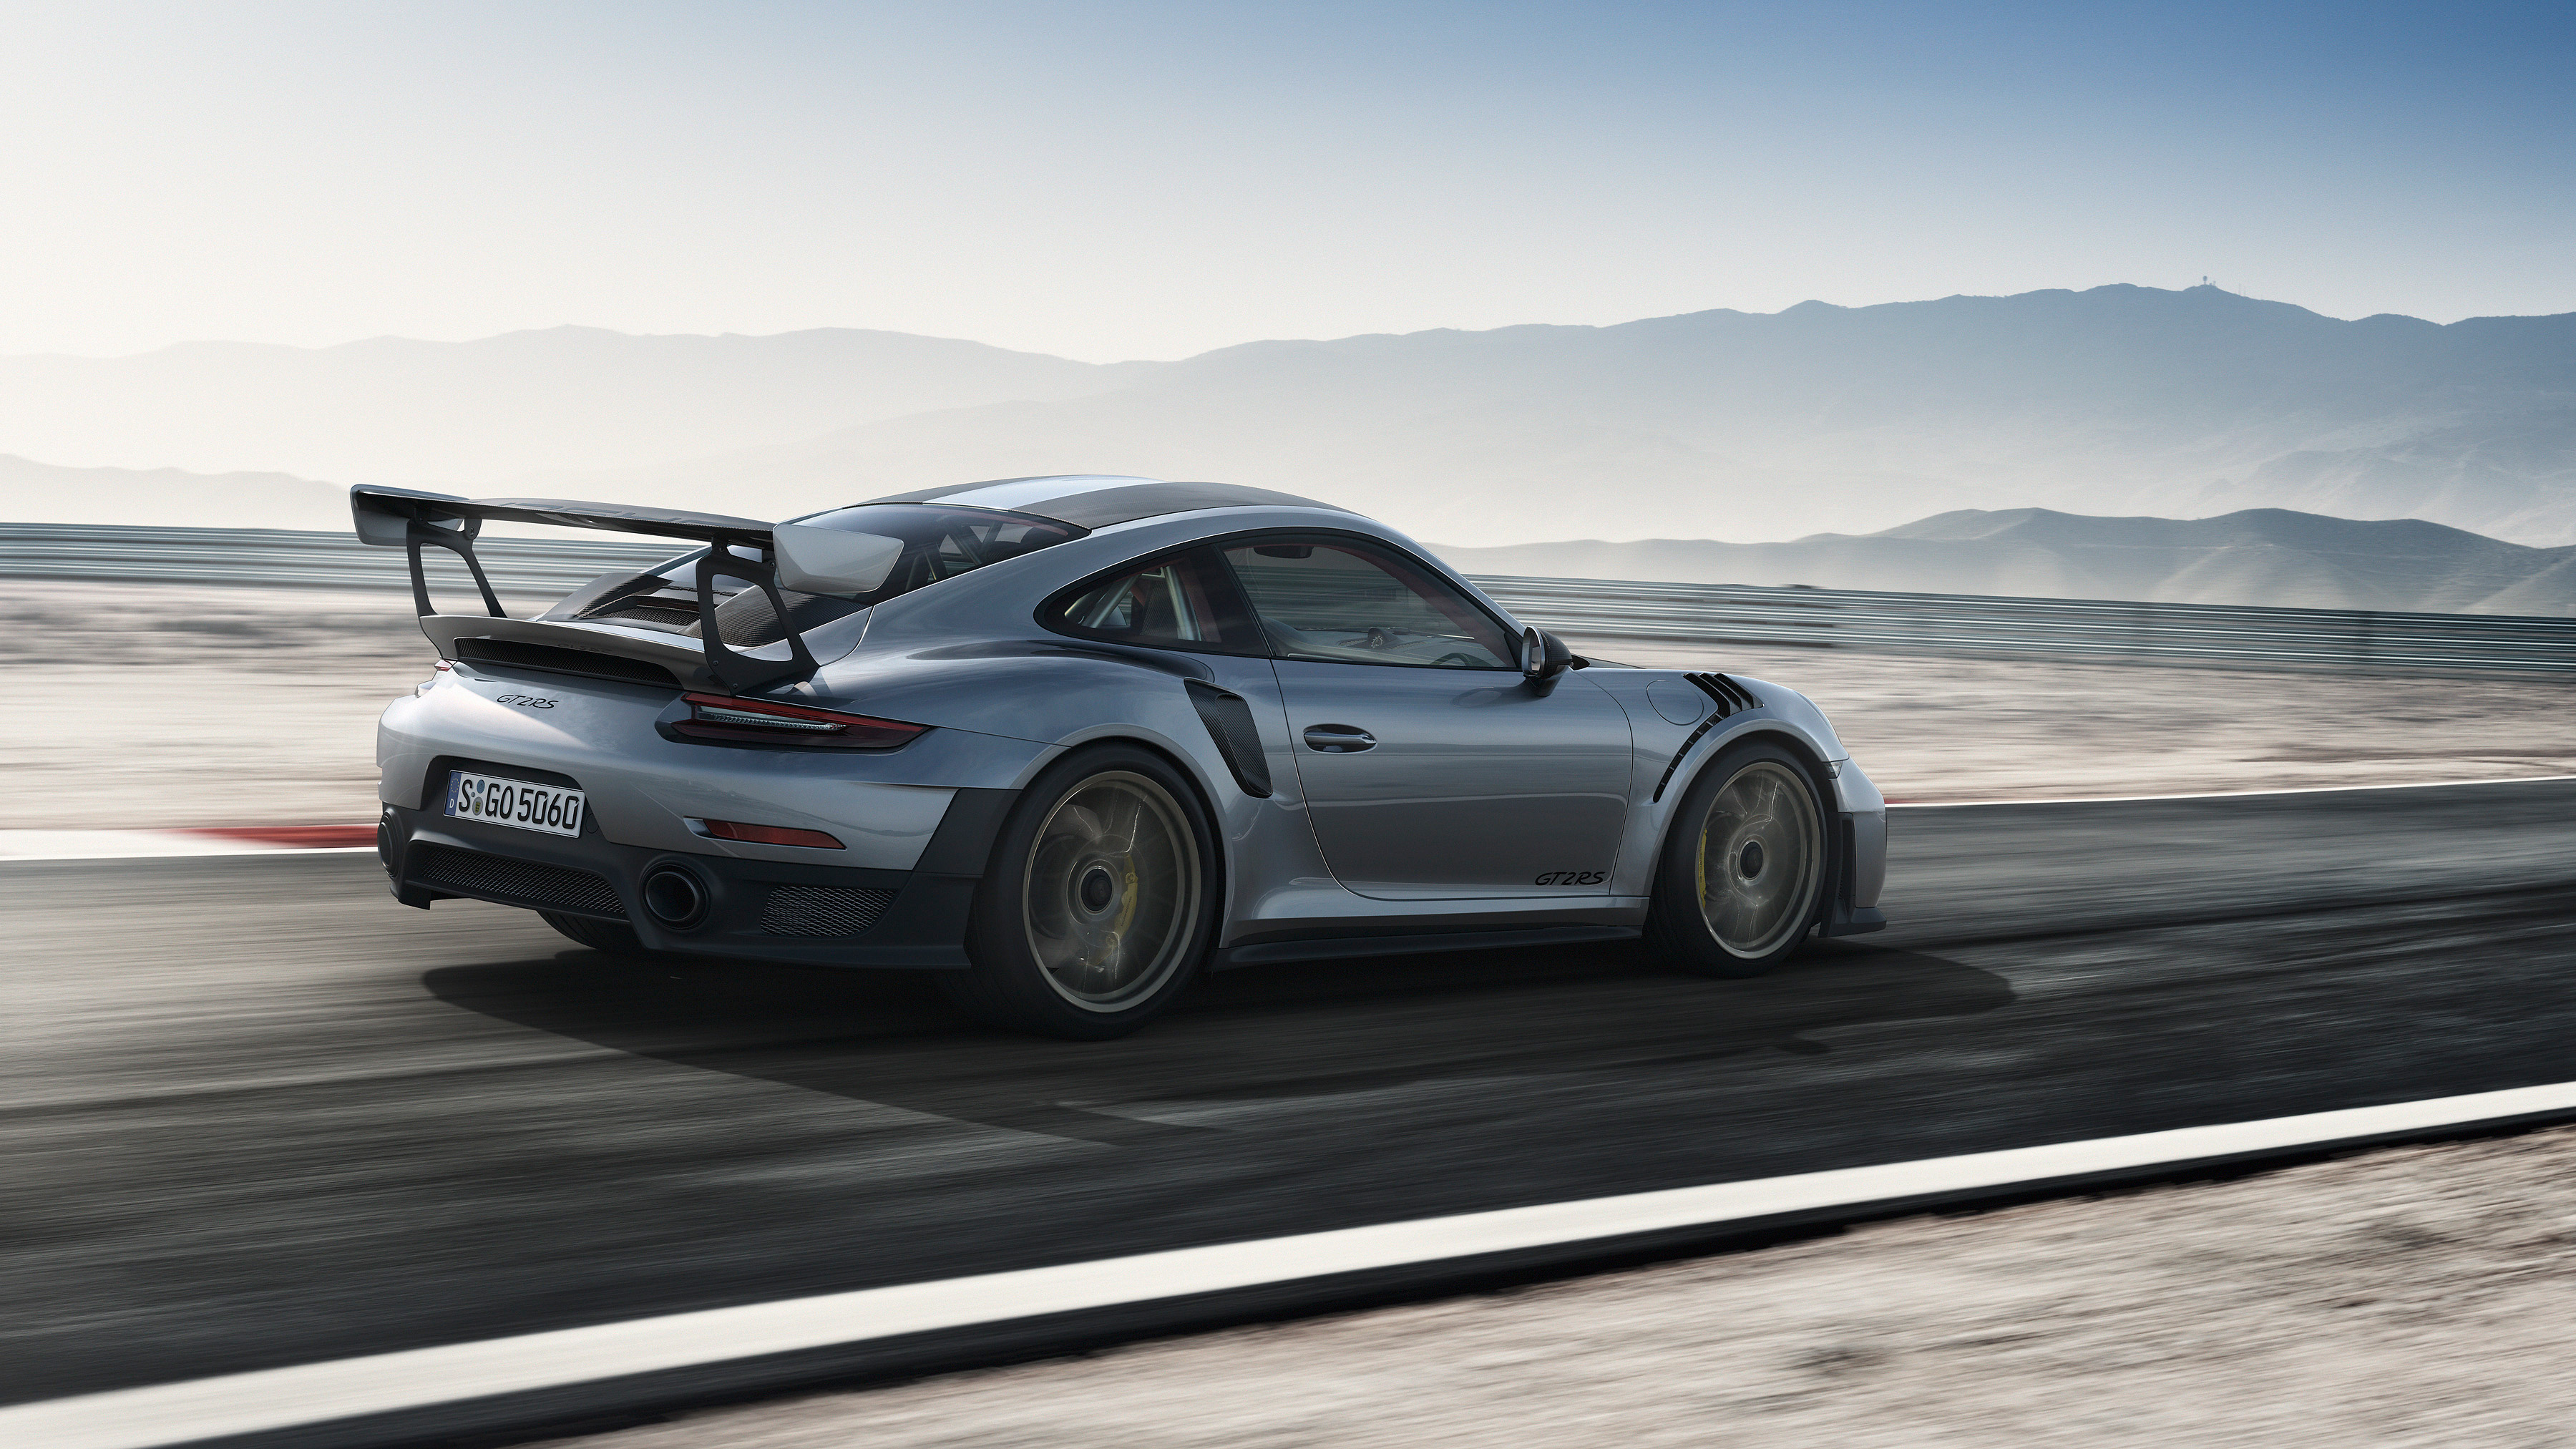 porsche-911-gt2-rs-2018-oj Cozy Porsche 911 Gt2 Rs Wallpaper Cars Trend